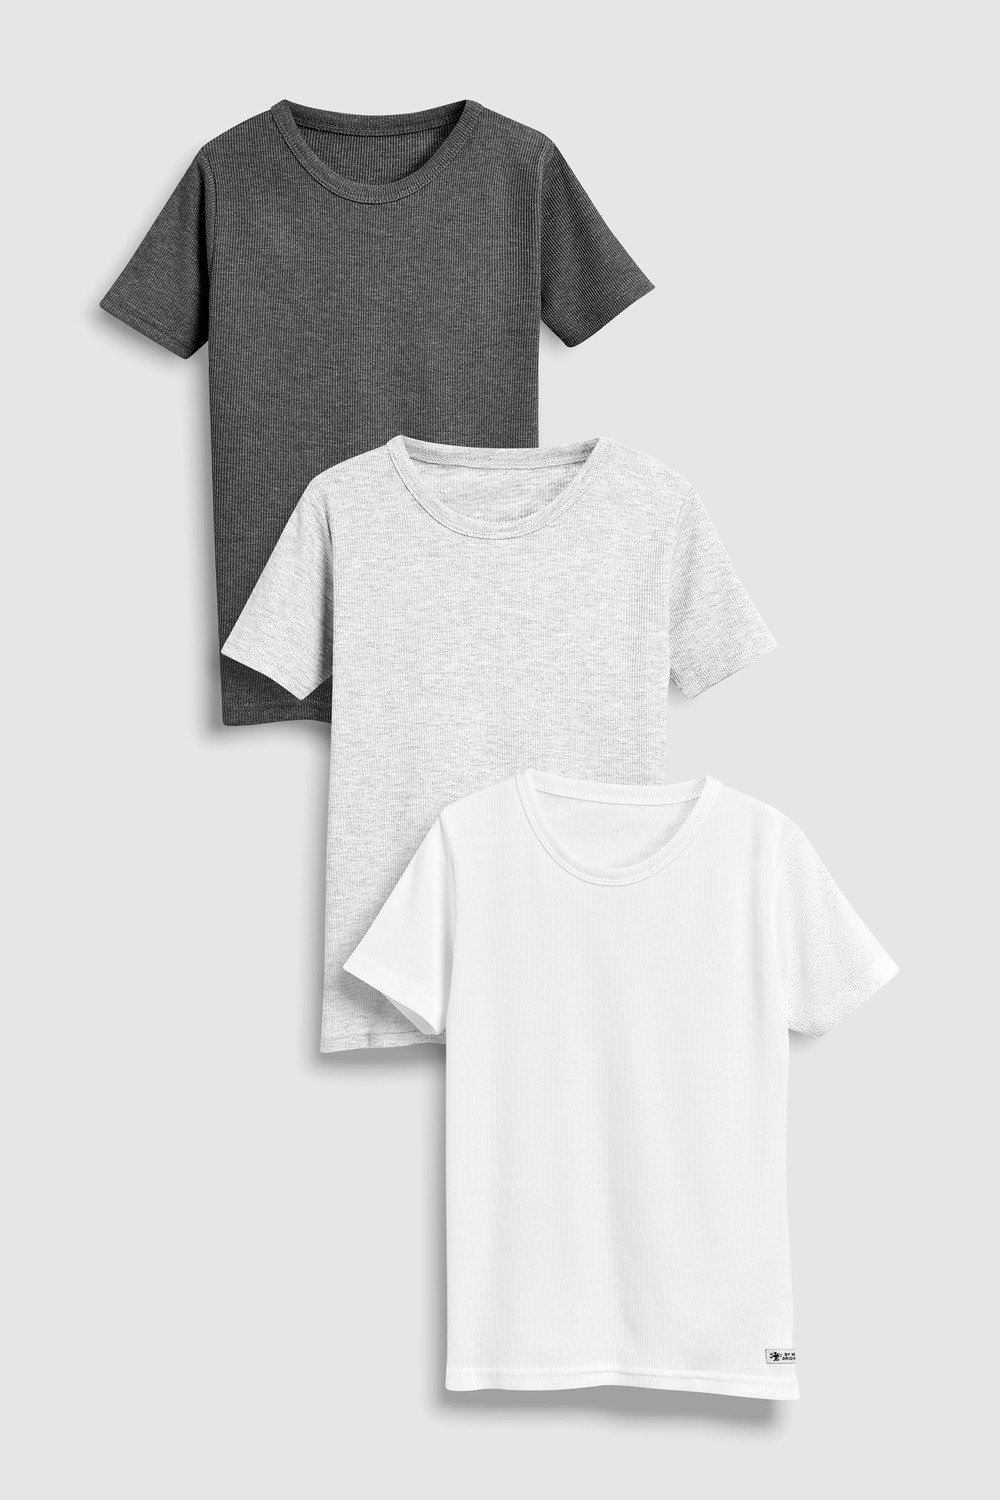 11-12 Years 2-3 7-8 3-4 3 Pack Boys White 100/% Cotton T-Shirts 1.5-2 5-6